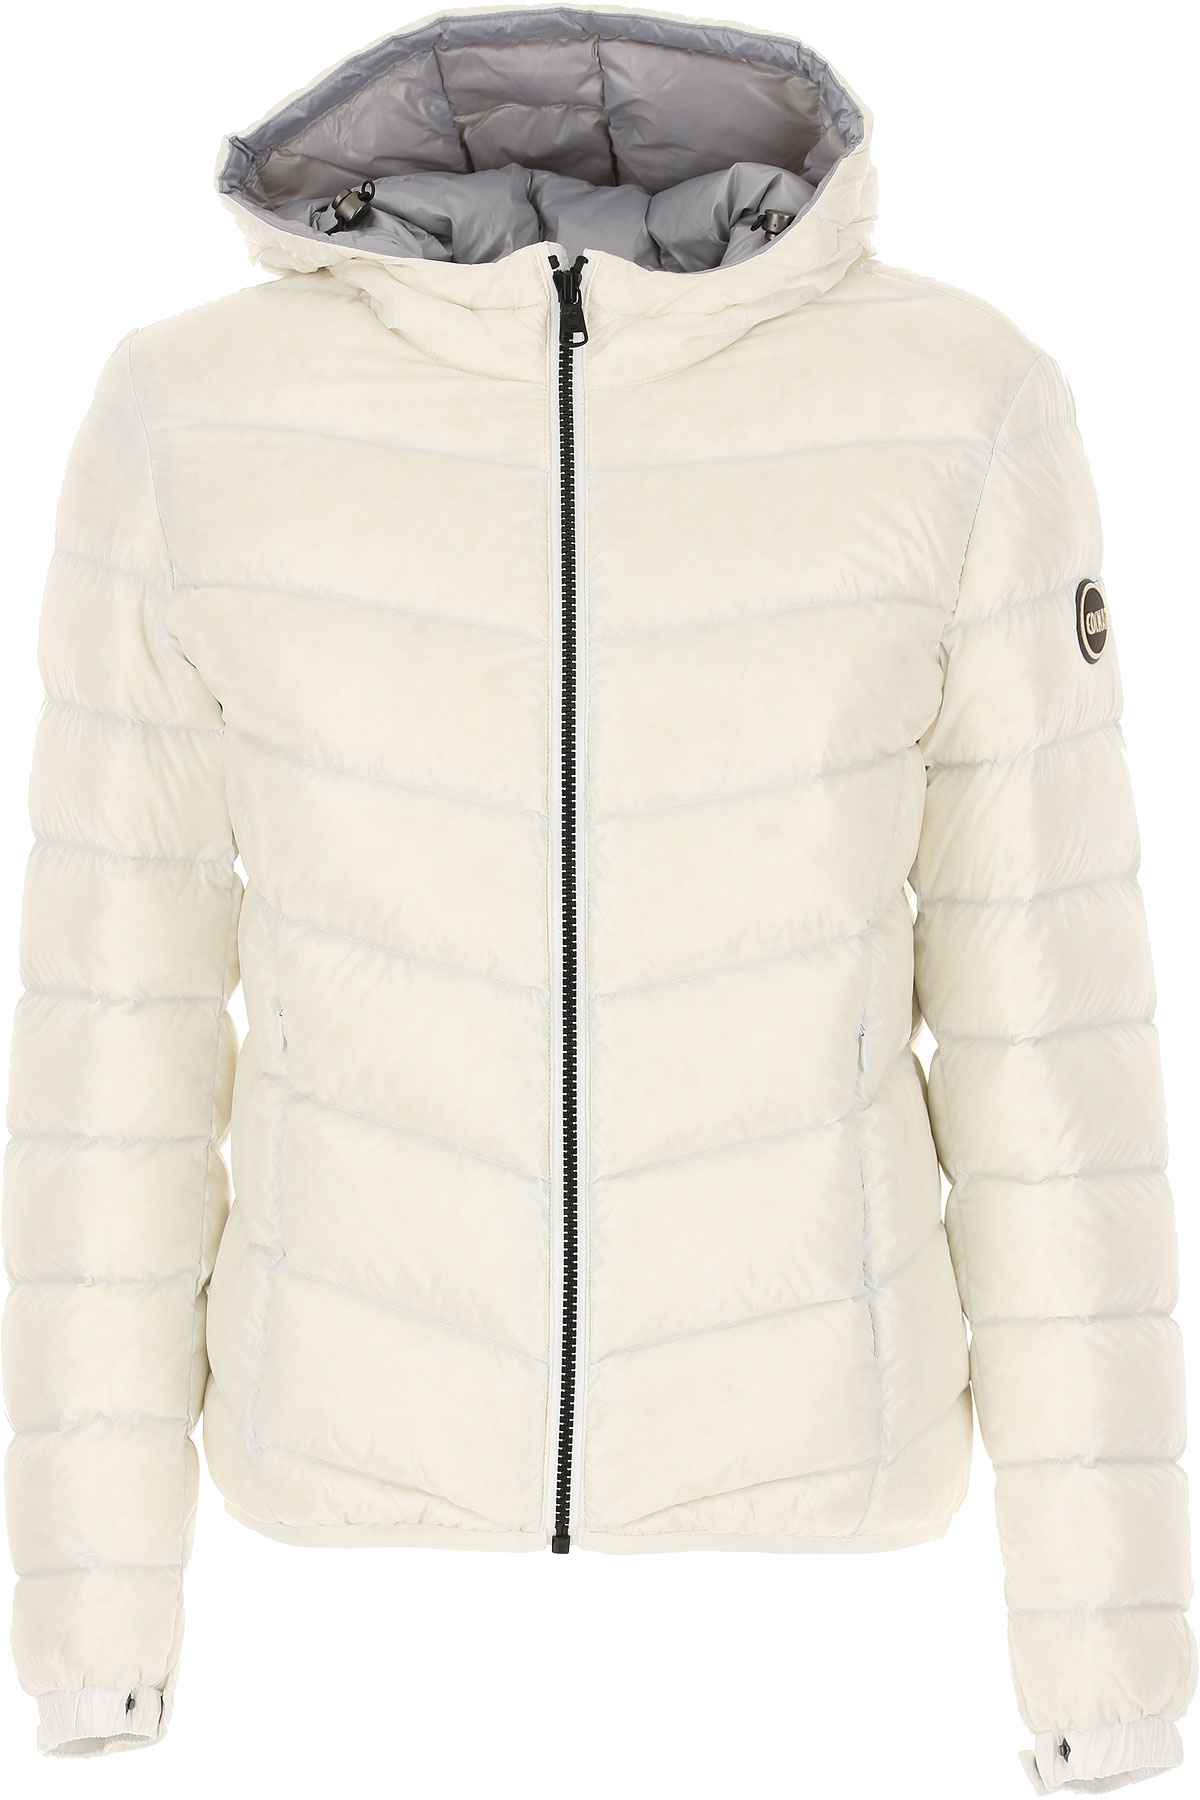 Colmar Down Jacket for Women, Puffer Ski Jacket On Sale in Outlet, White, polyamide, 2019, 4 6